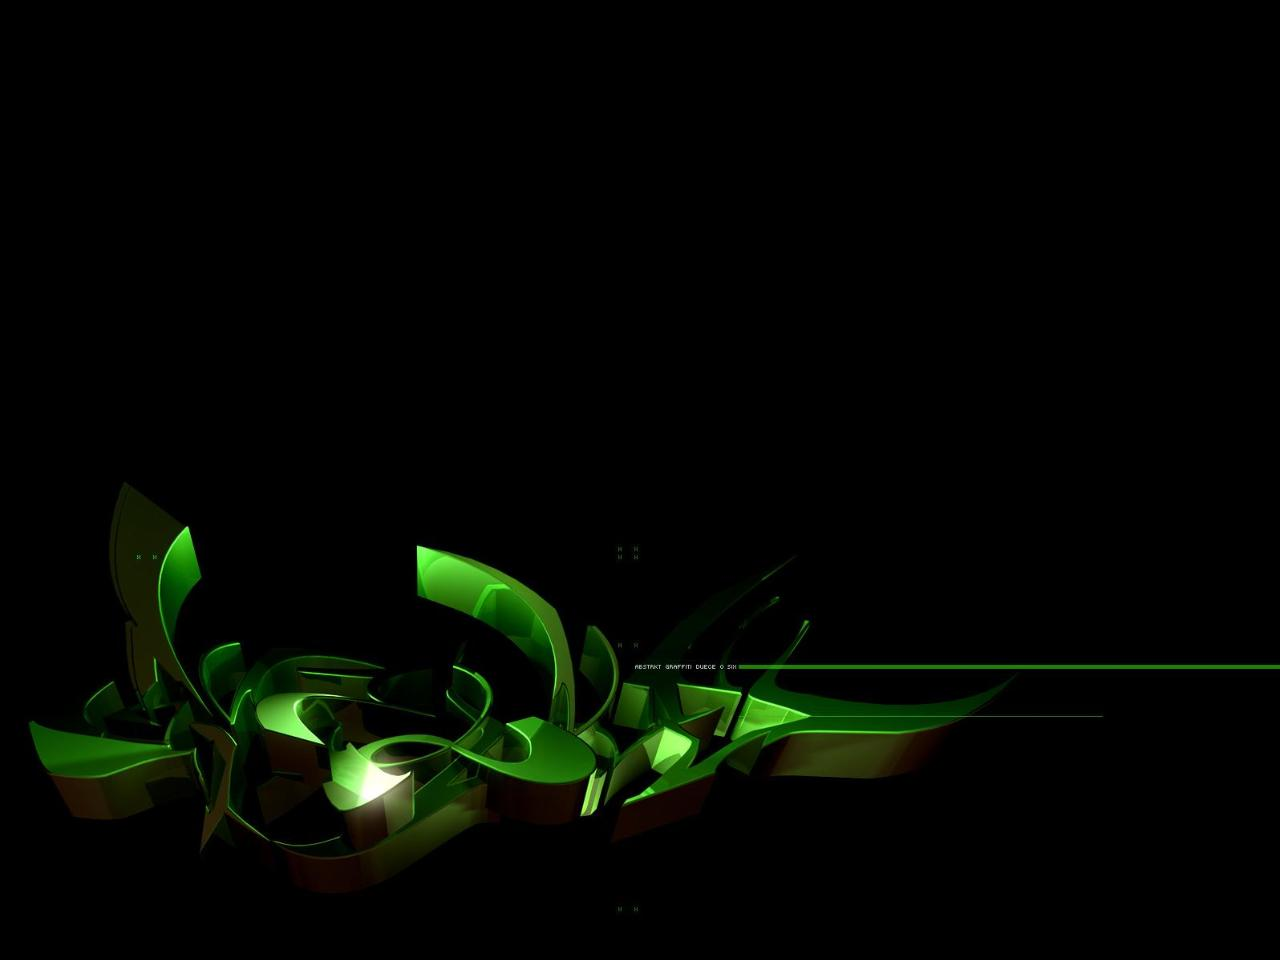 Green And Black Images 15 Cool Hd Wallpaper ...  Green And Black...